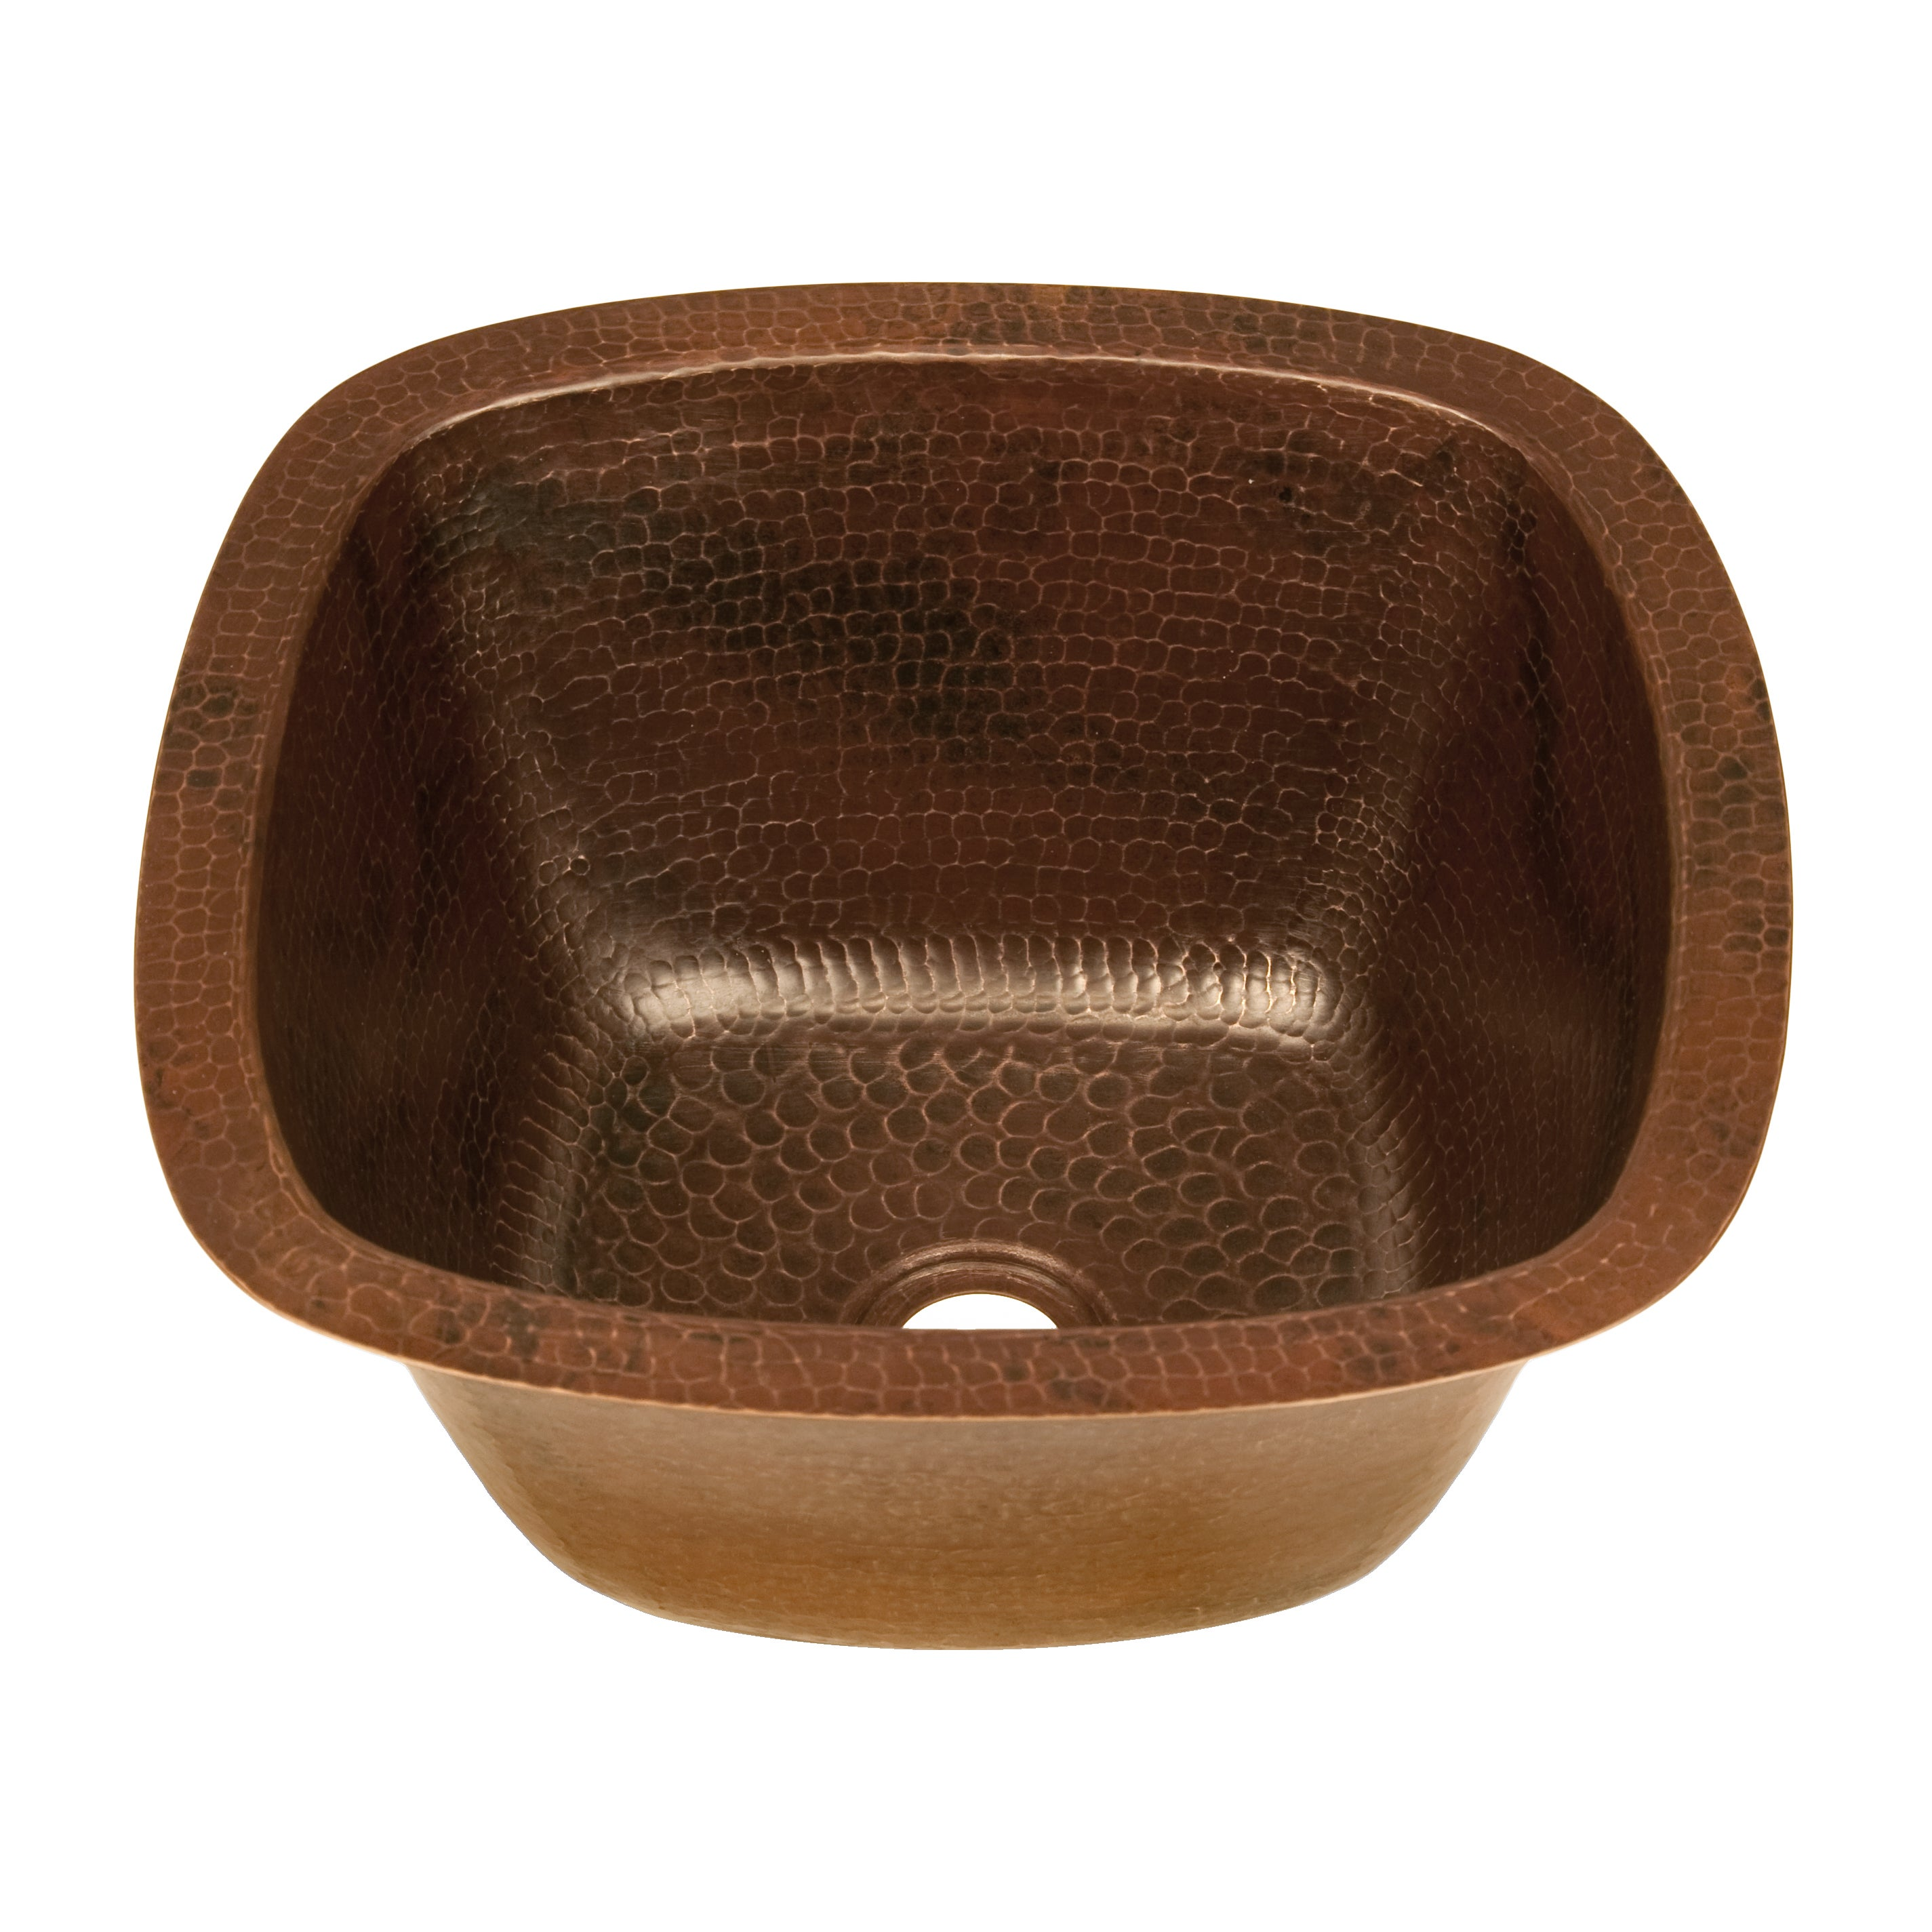 Copper Bathroom Sink Overstock Shopping Great Deals On Bathroom